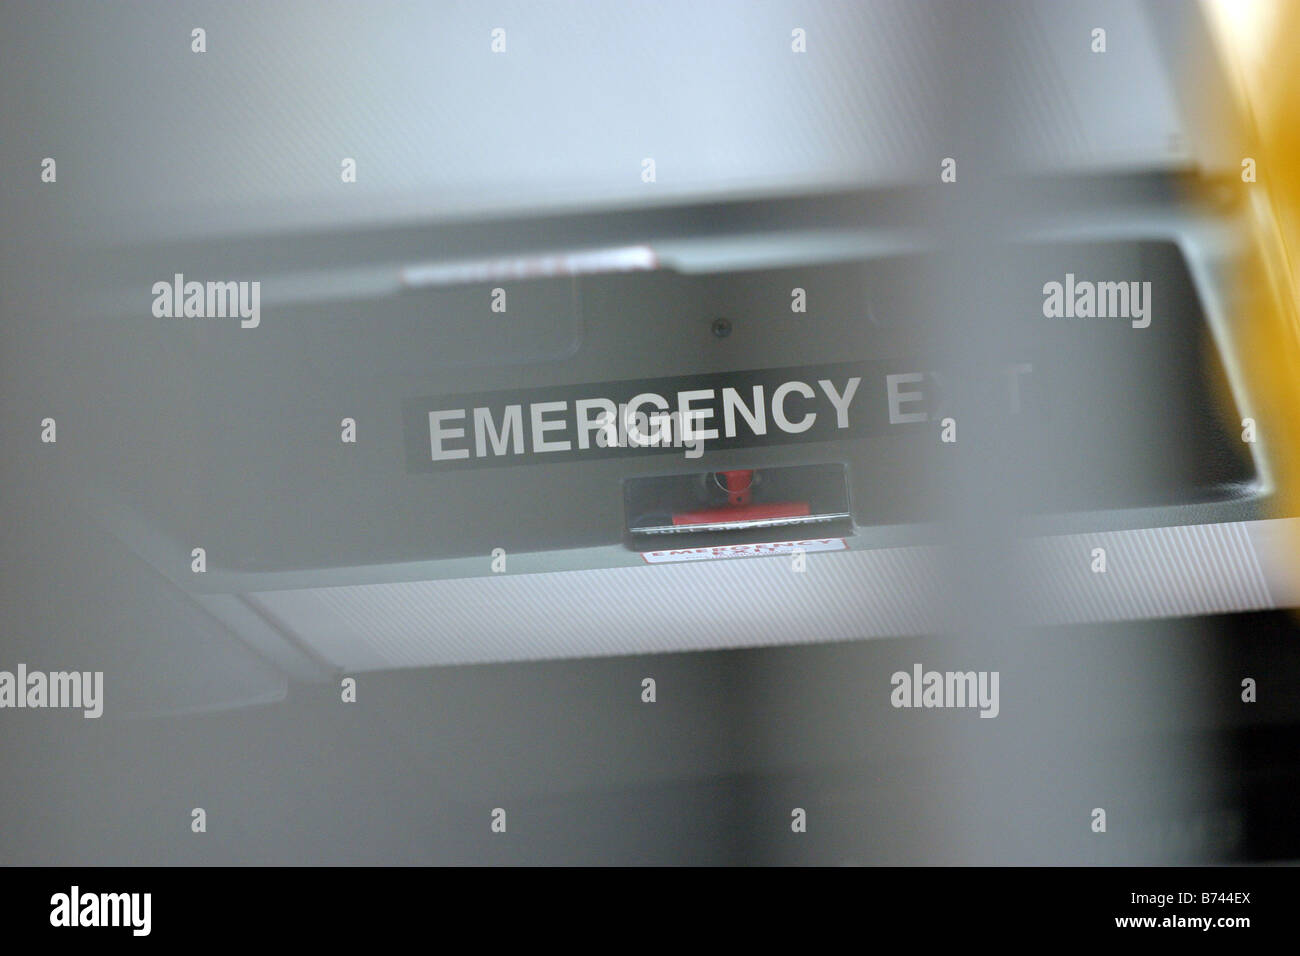 Emergency exit sign  in a bendy bus - Stock Image